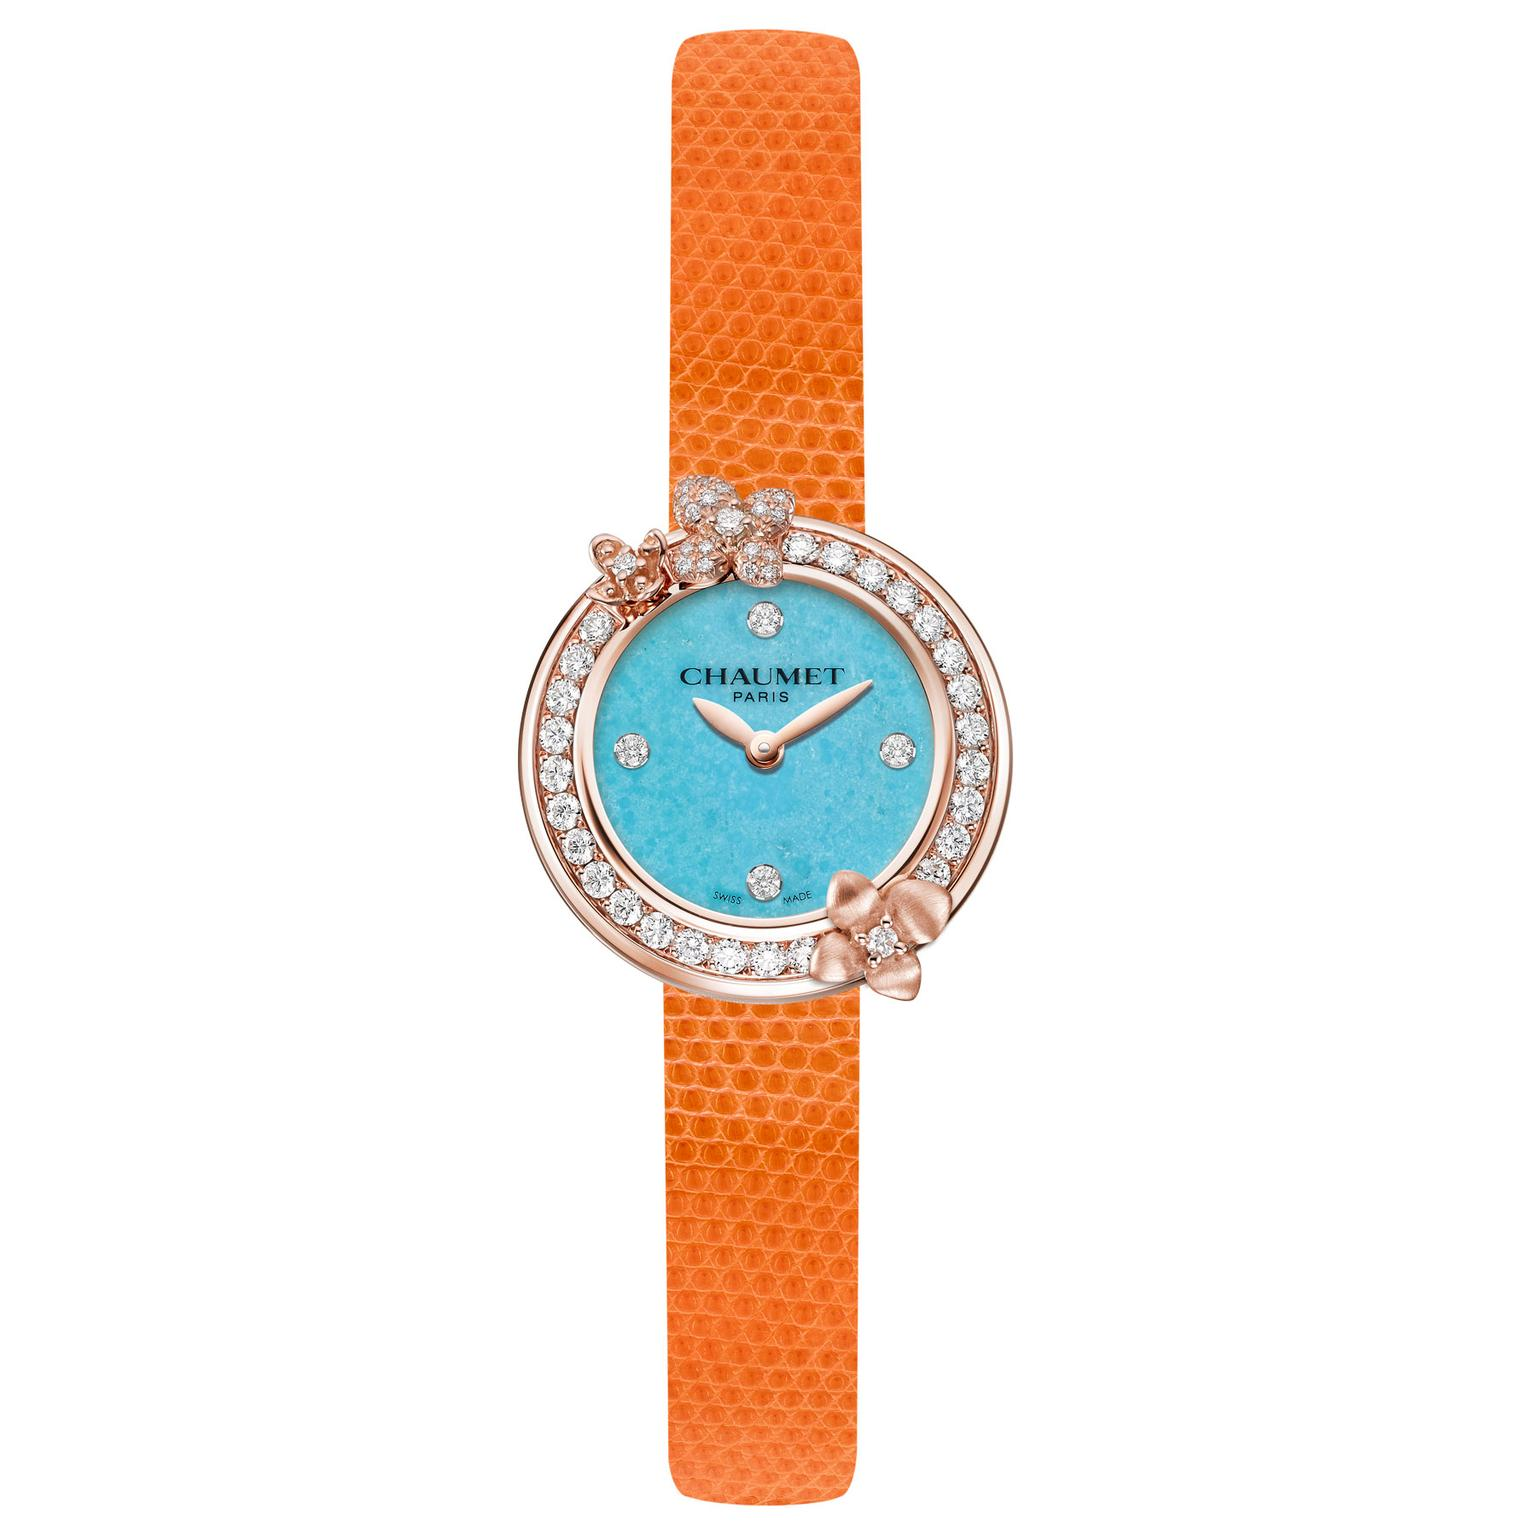 Chaumet Hortensia Eden watch with turquoise dial